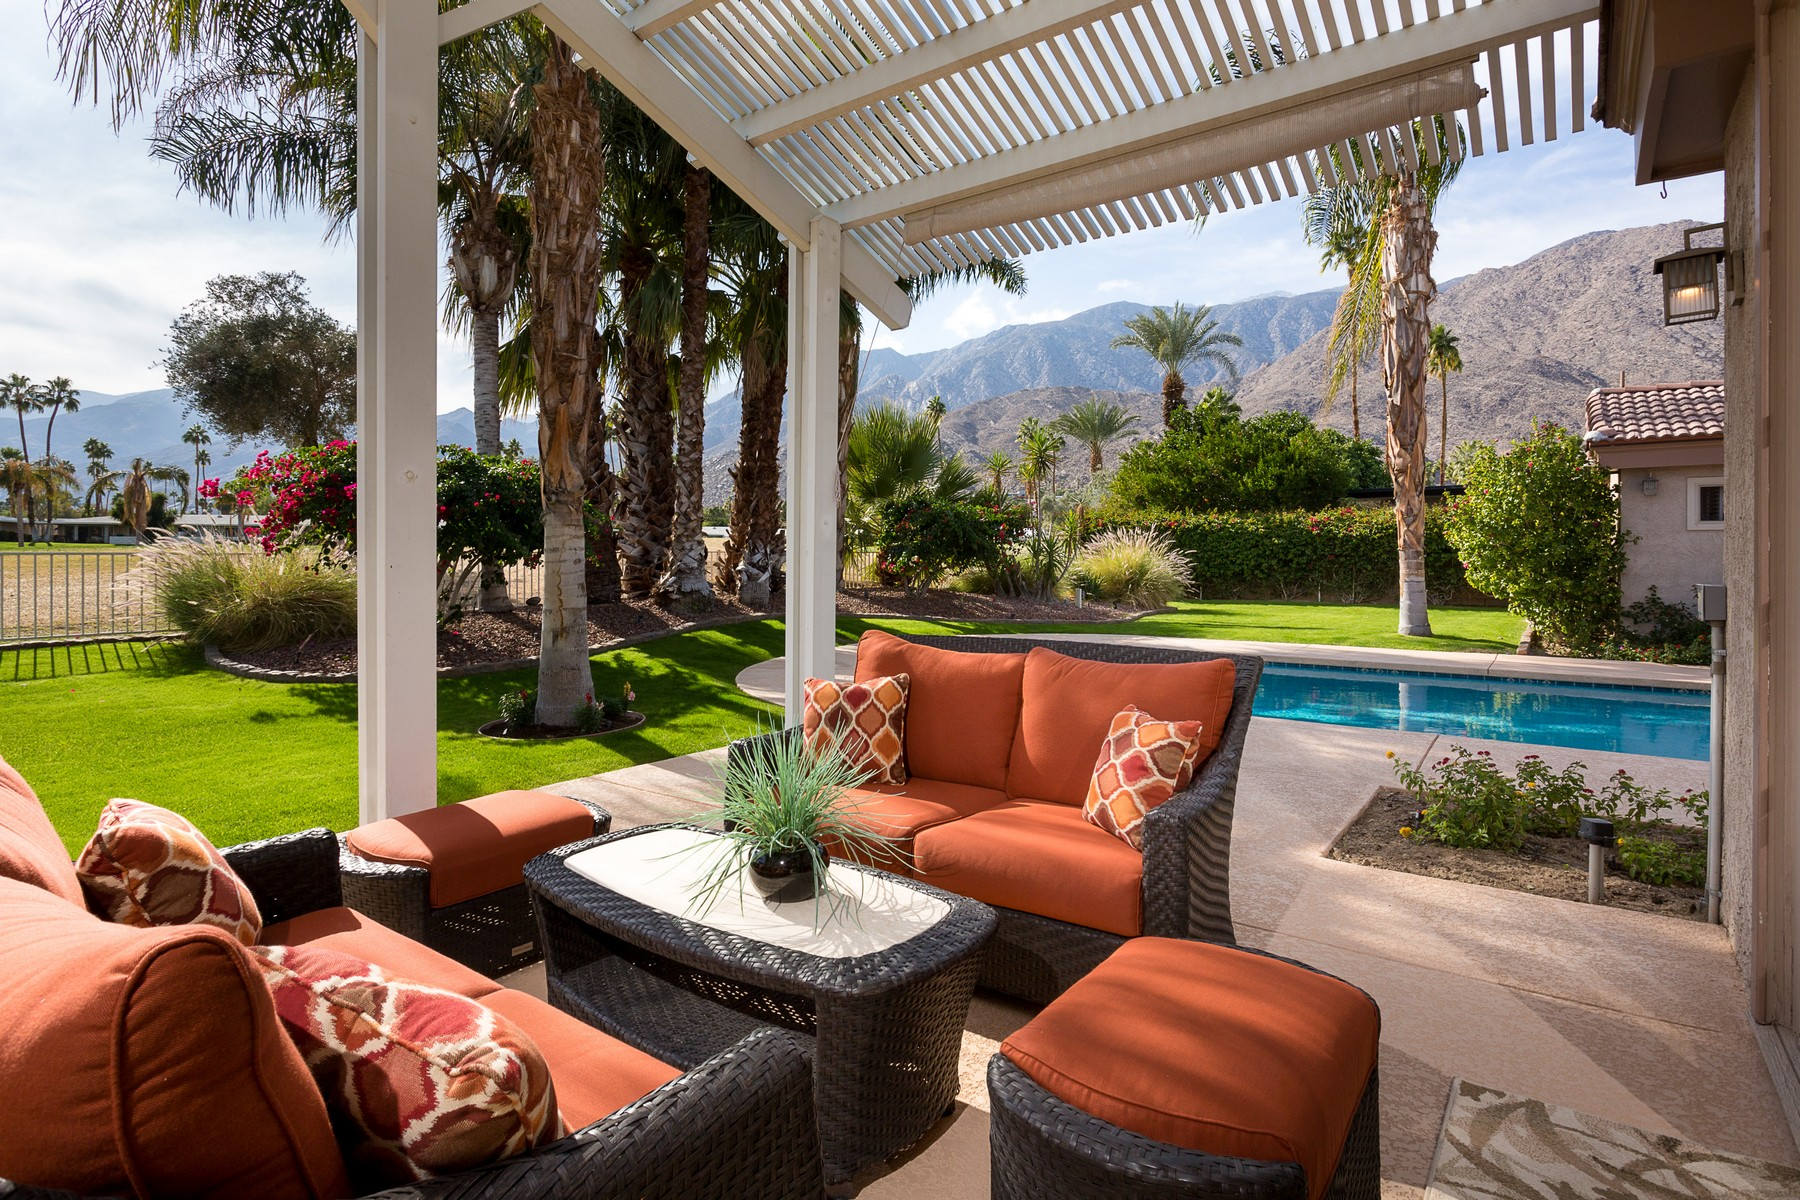 Single Family Home for Sale at 605 East Sierra Way Palm Springs, California, 92264 United States